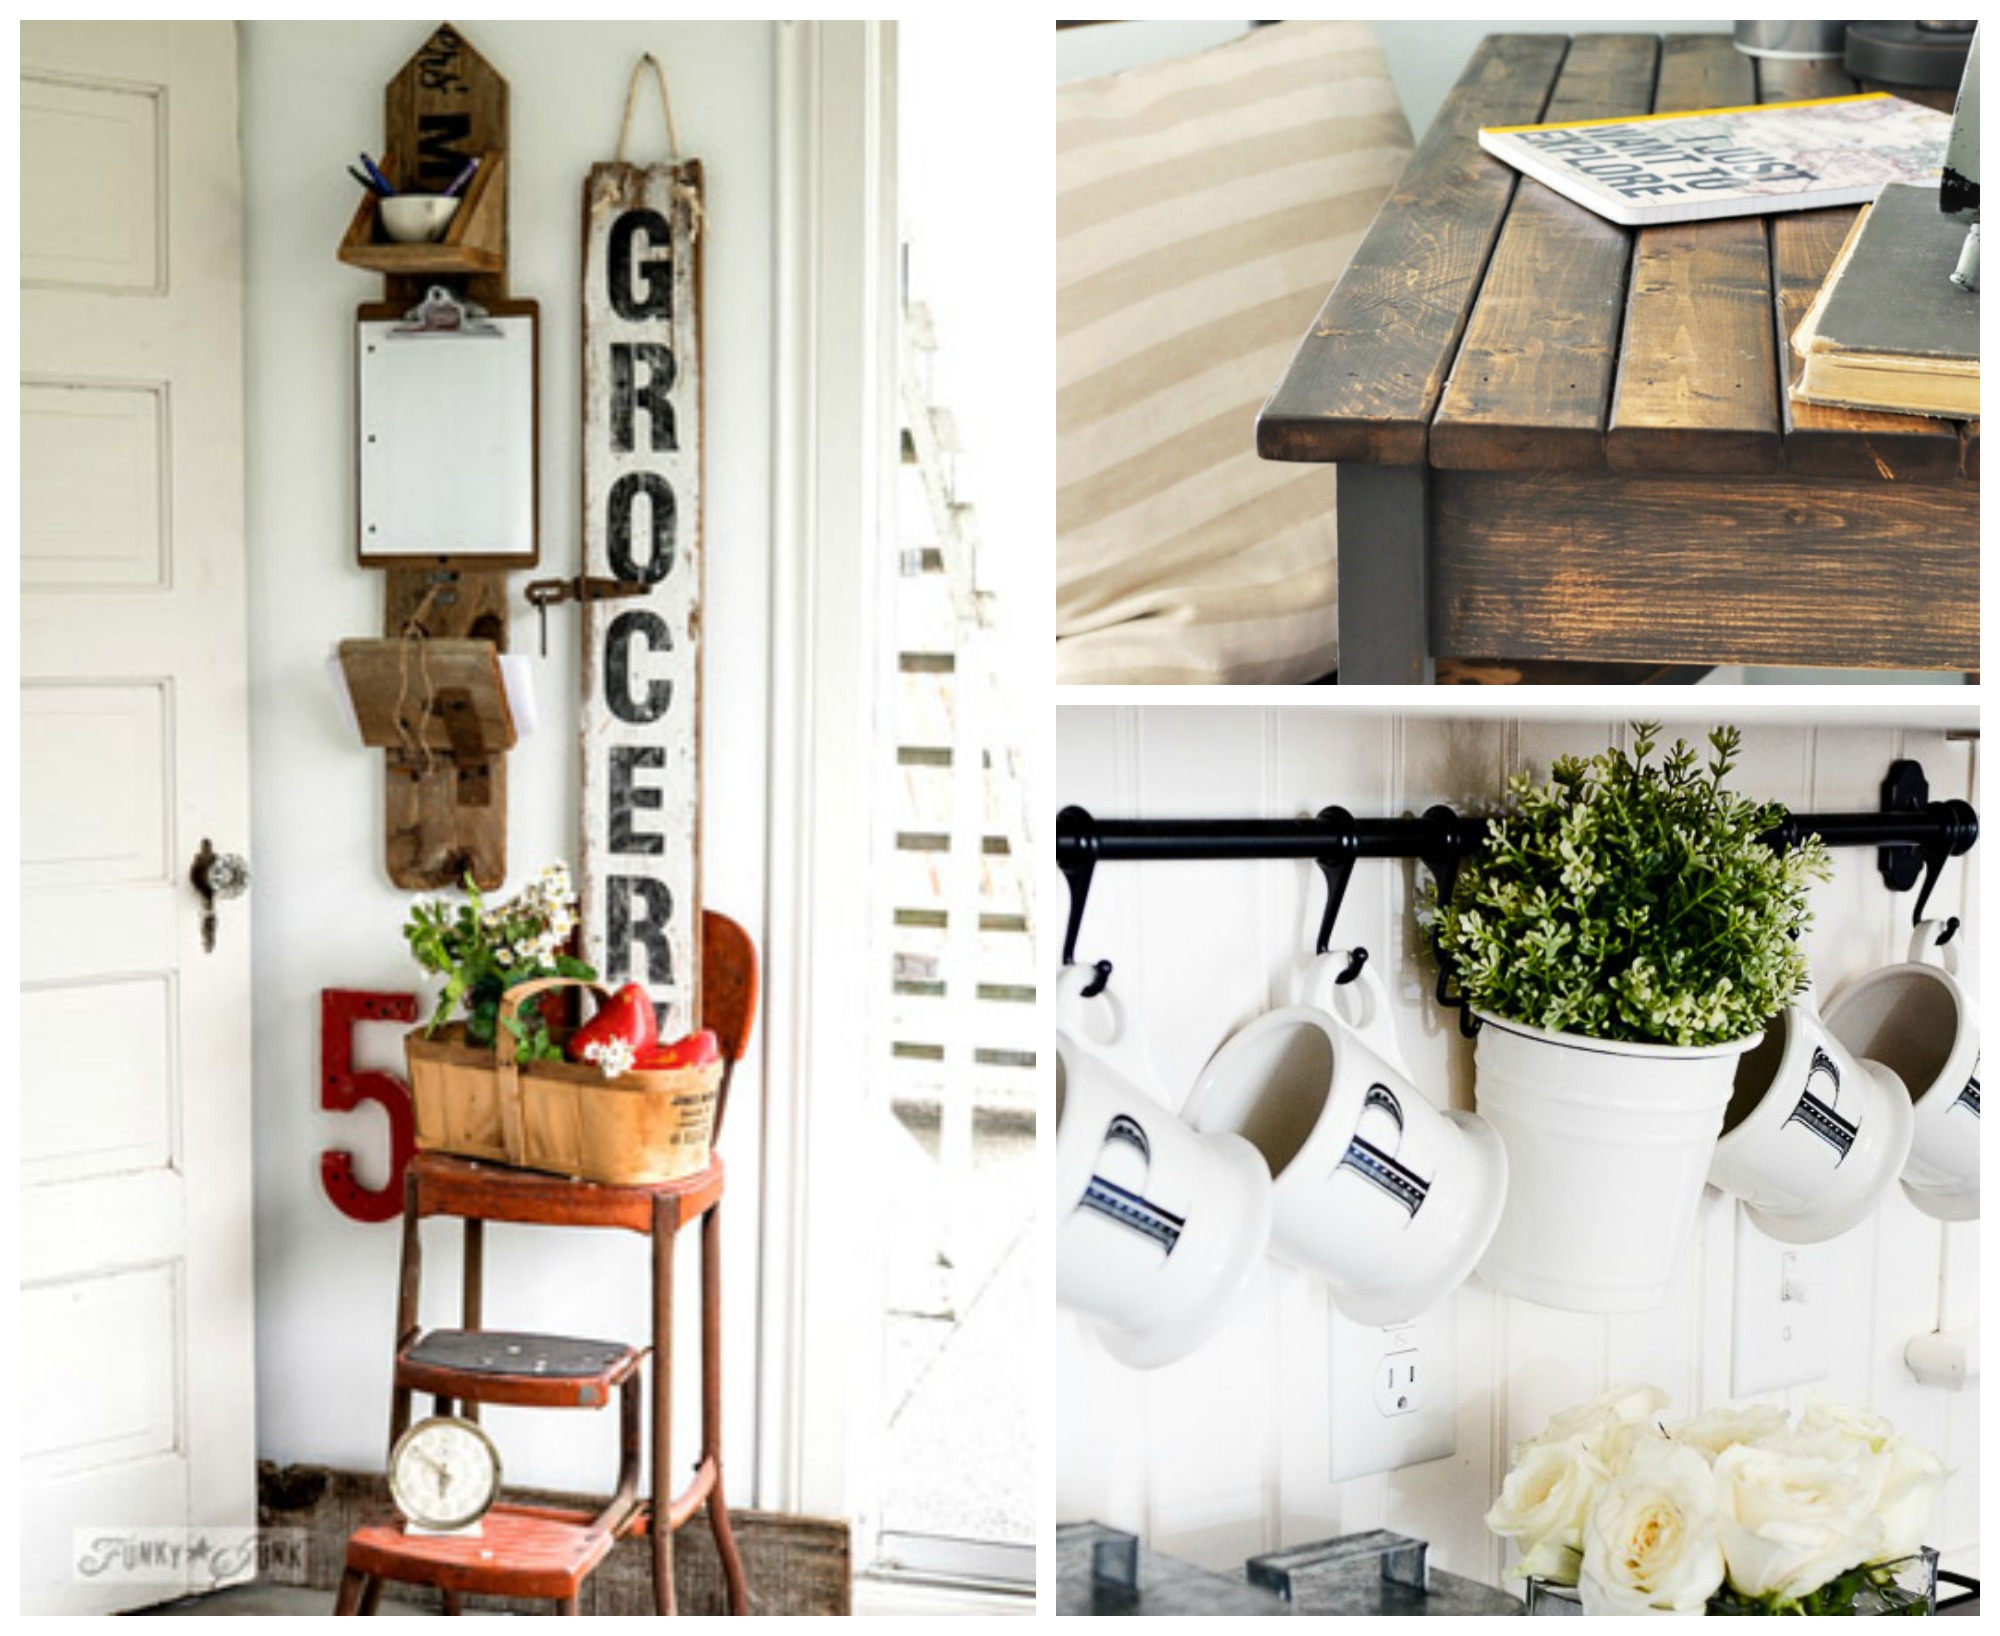 Easy Diy Home Decorating Ideas: 12 DIY Farmhouse Decor Ideas You Need To Try